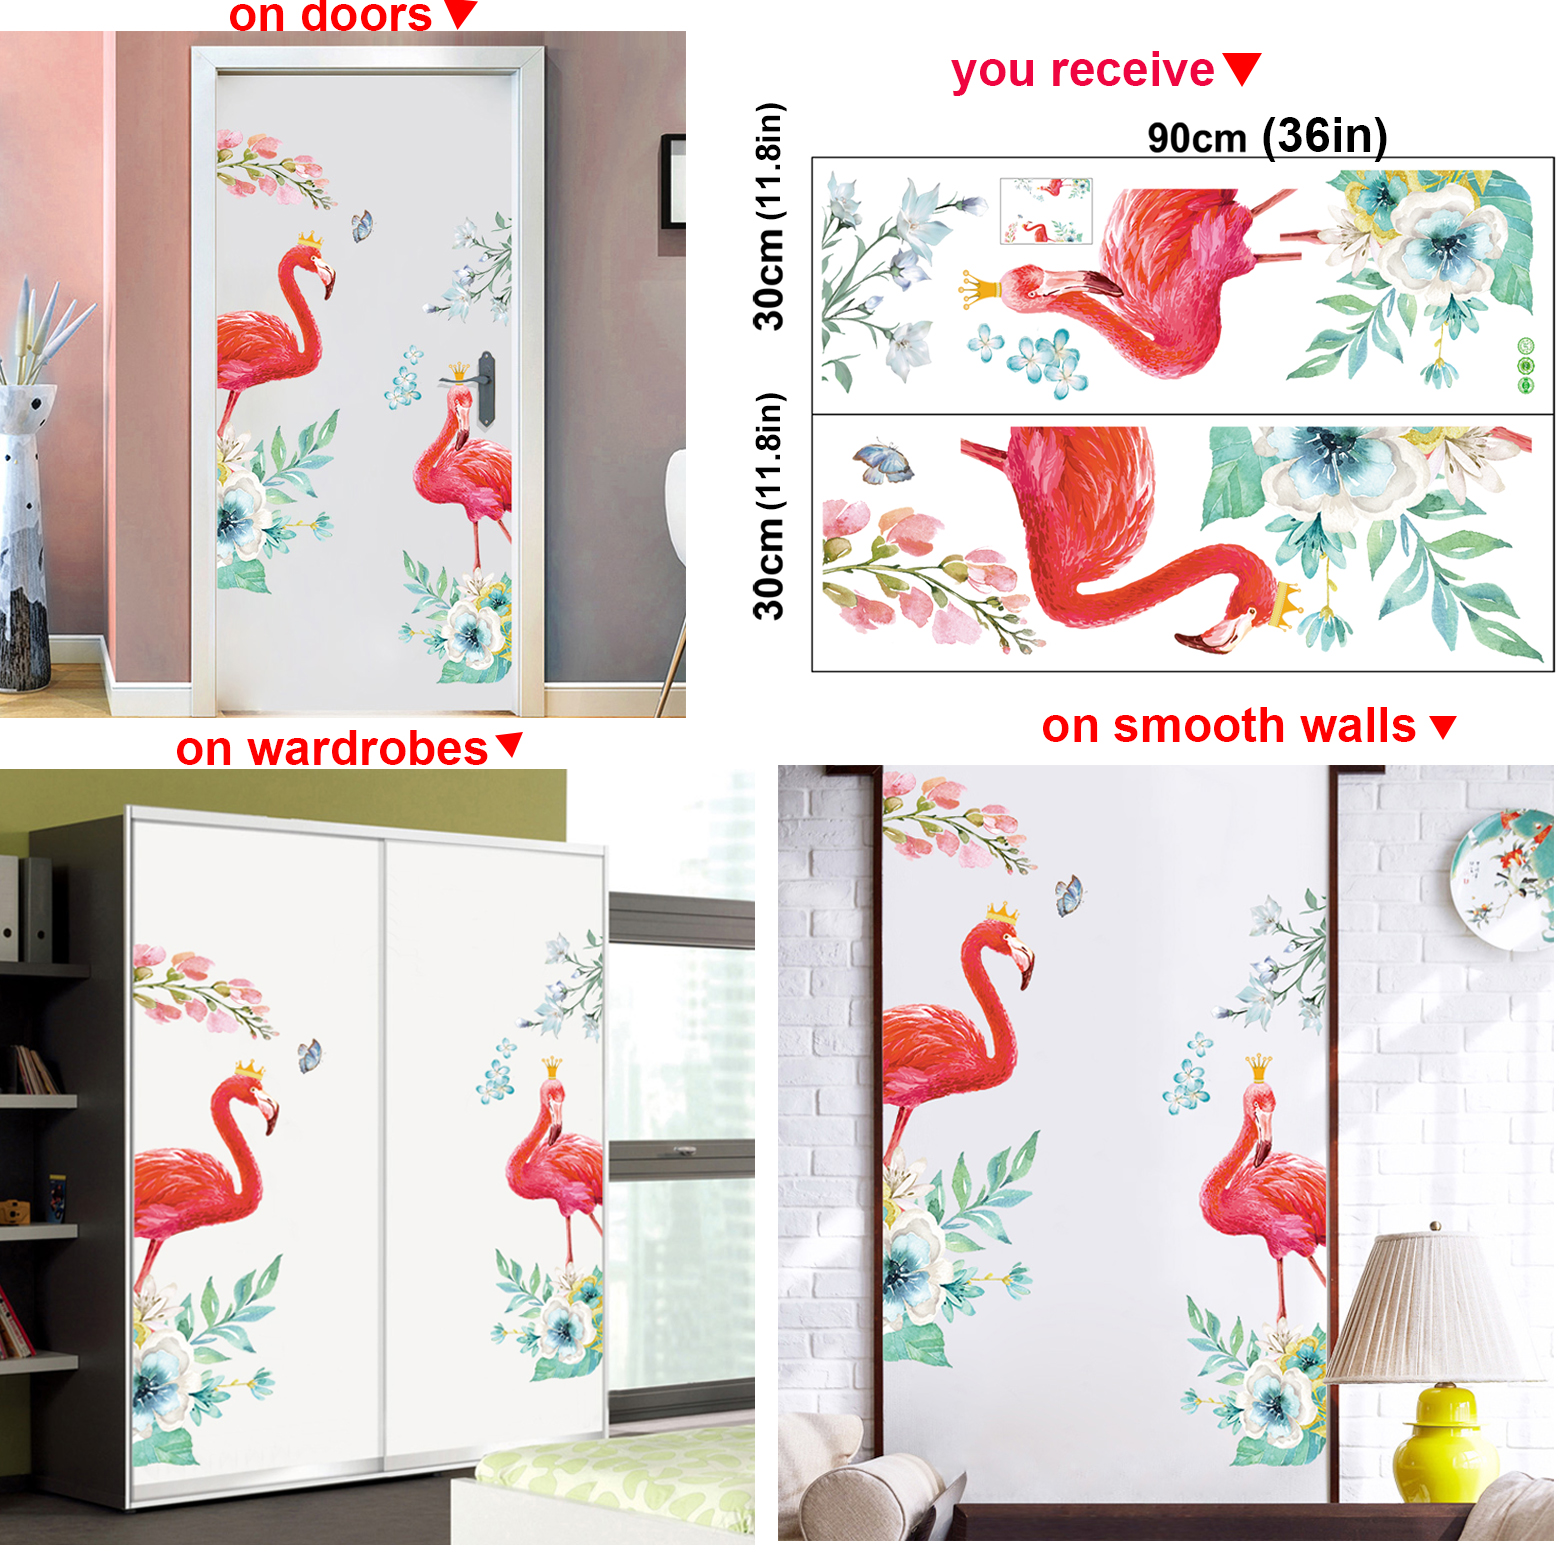 Flamingo Tropical Flowers Leaves Removable Wall Art Stickers Decal Nursery Decor Door Vinyl Decals Buy At The Price Of 6 10 In Aliexpress Com Imall